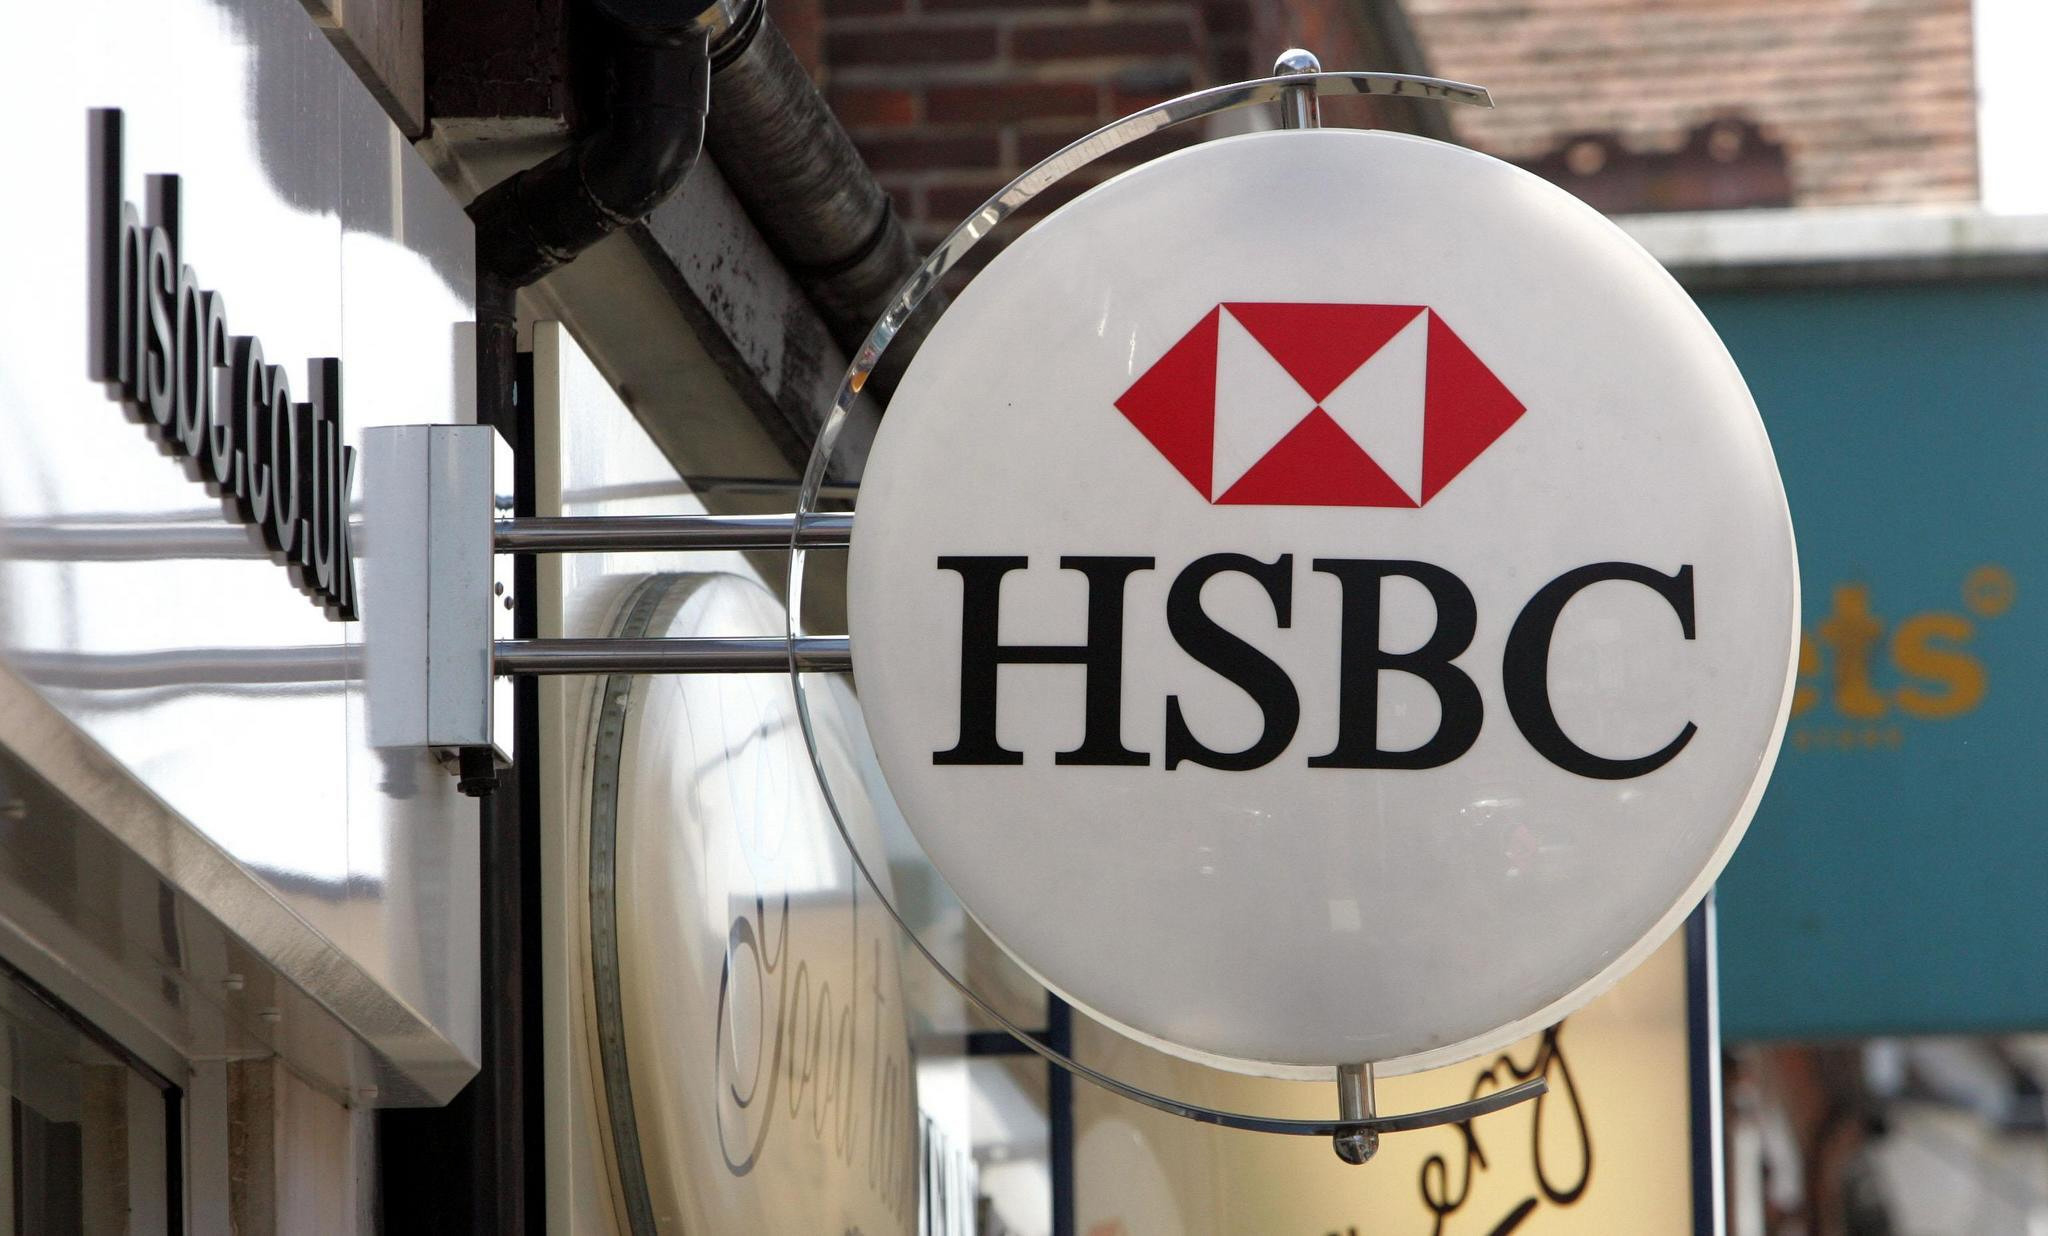 HSBC Group is compensating customers for bad service